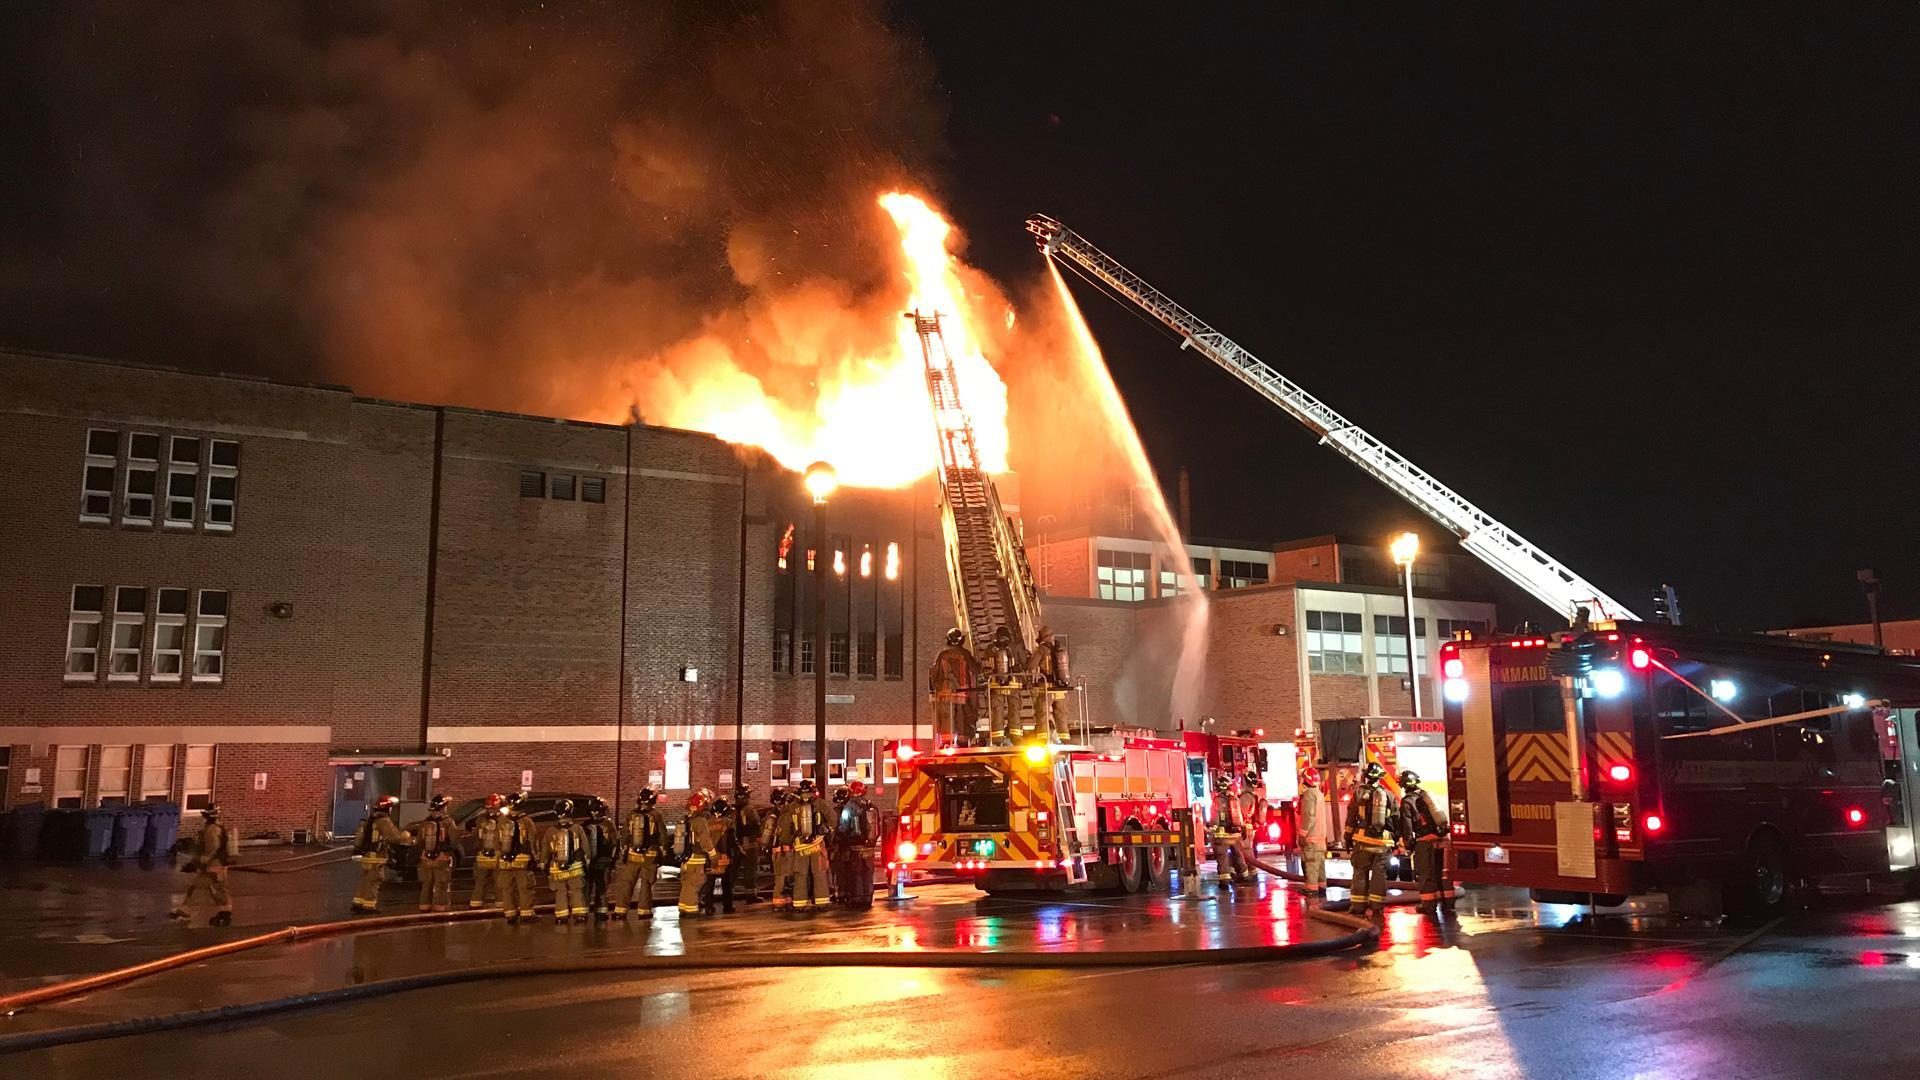 UPDATE: Toronto Fire notified of smoke two hours after it